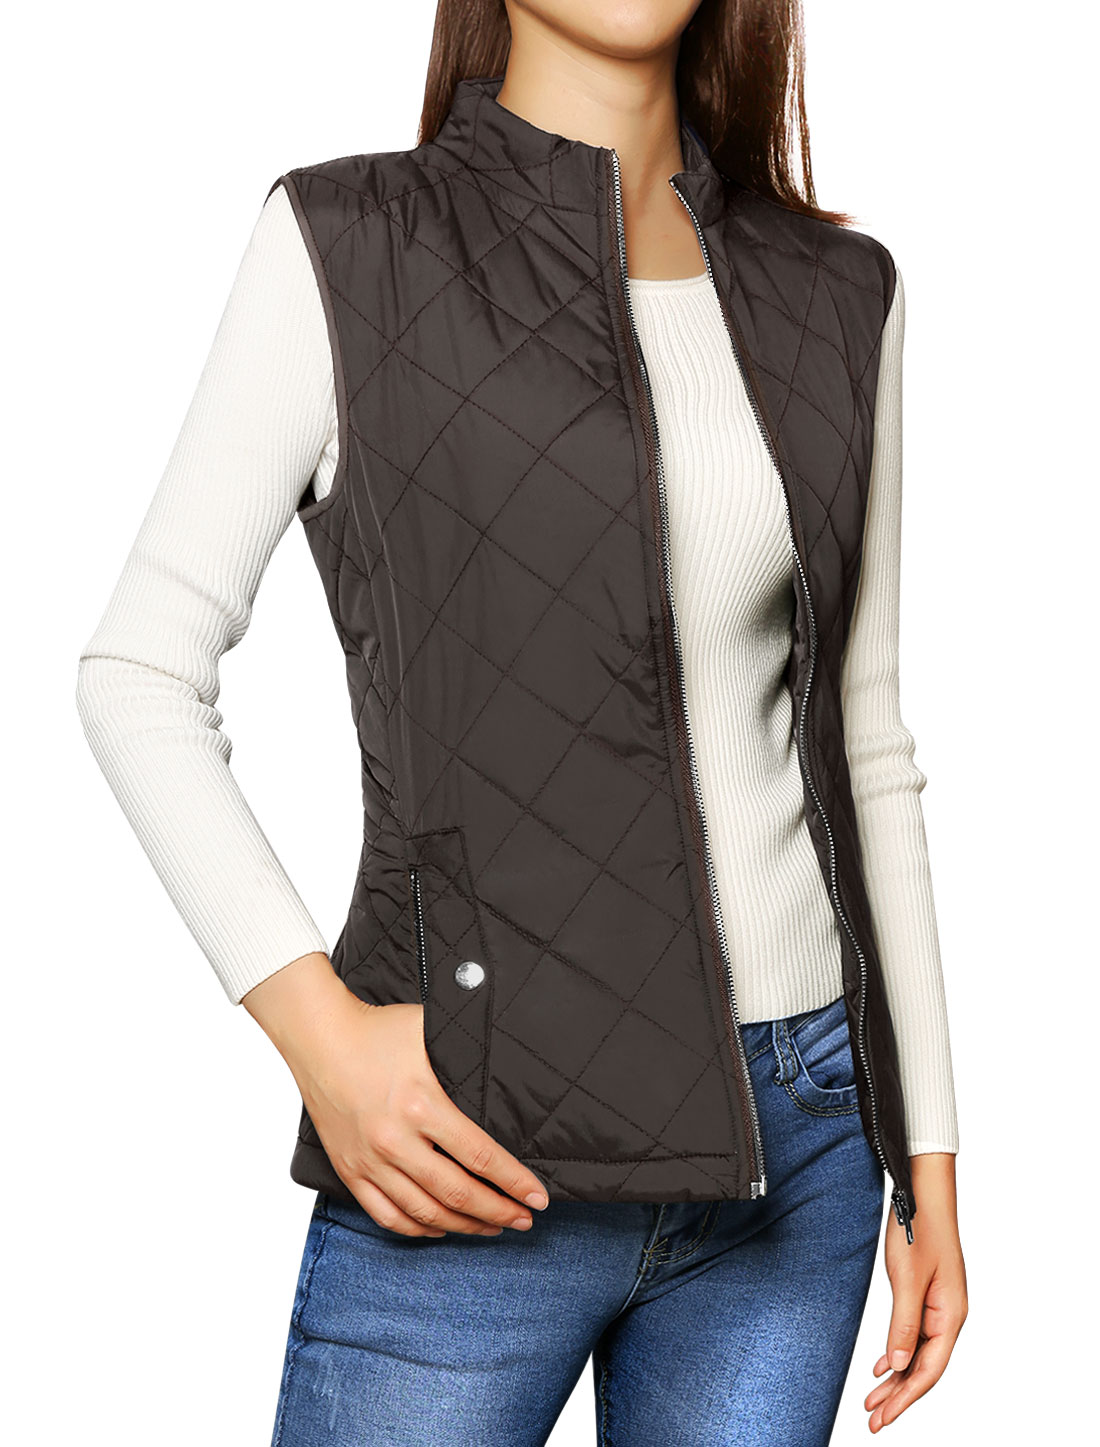 Allegra K Woman Zip Up Stand Collar Slant Pockets Quilted Padded Vest Brown M